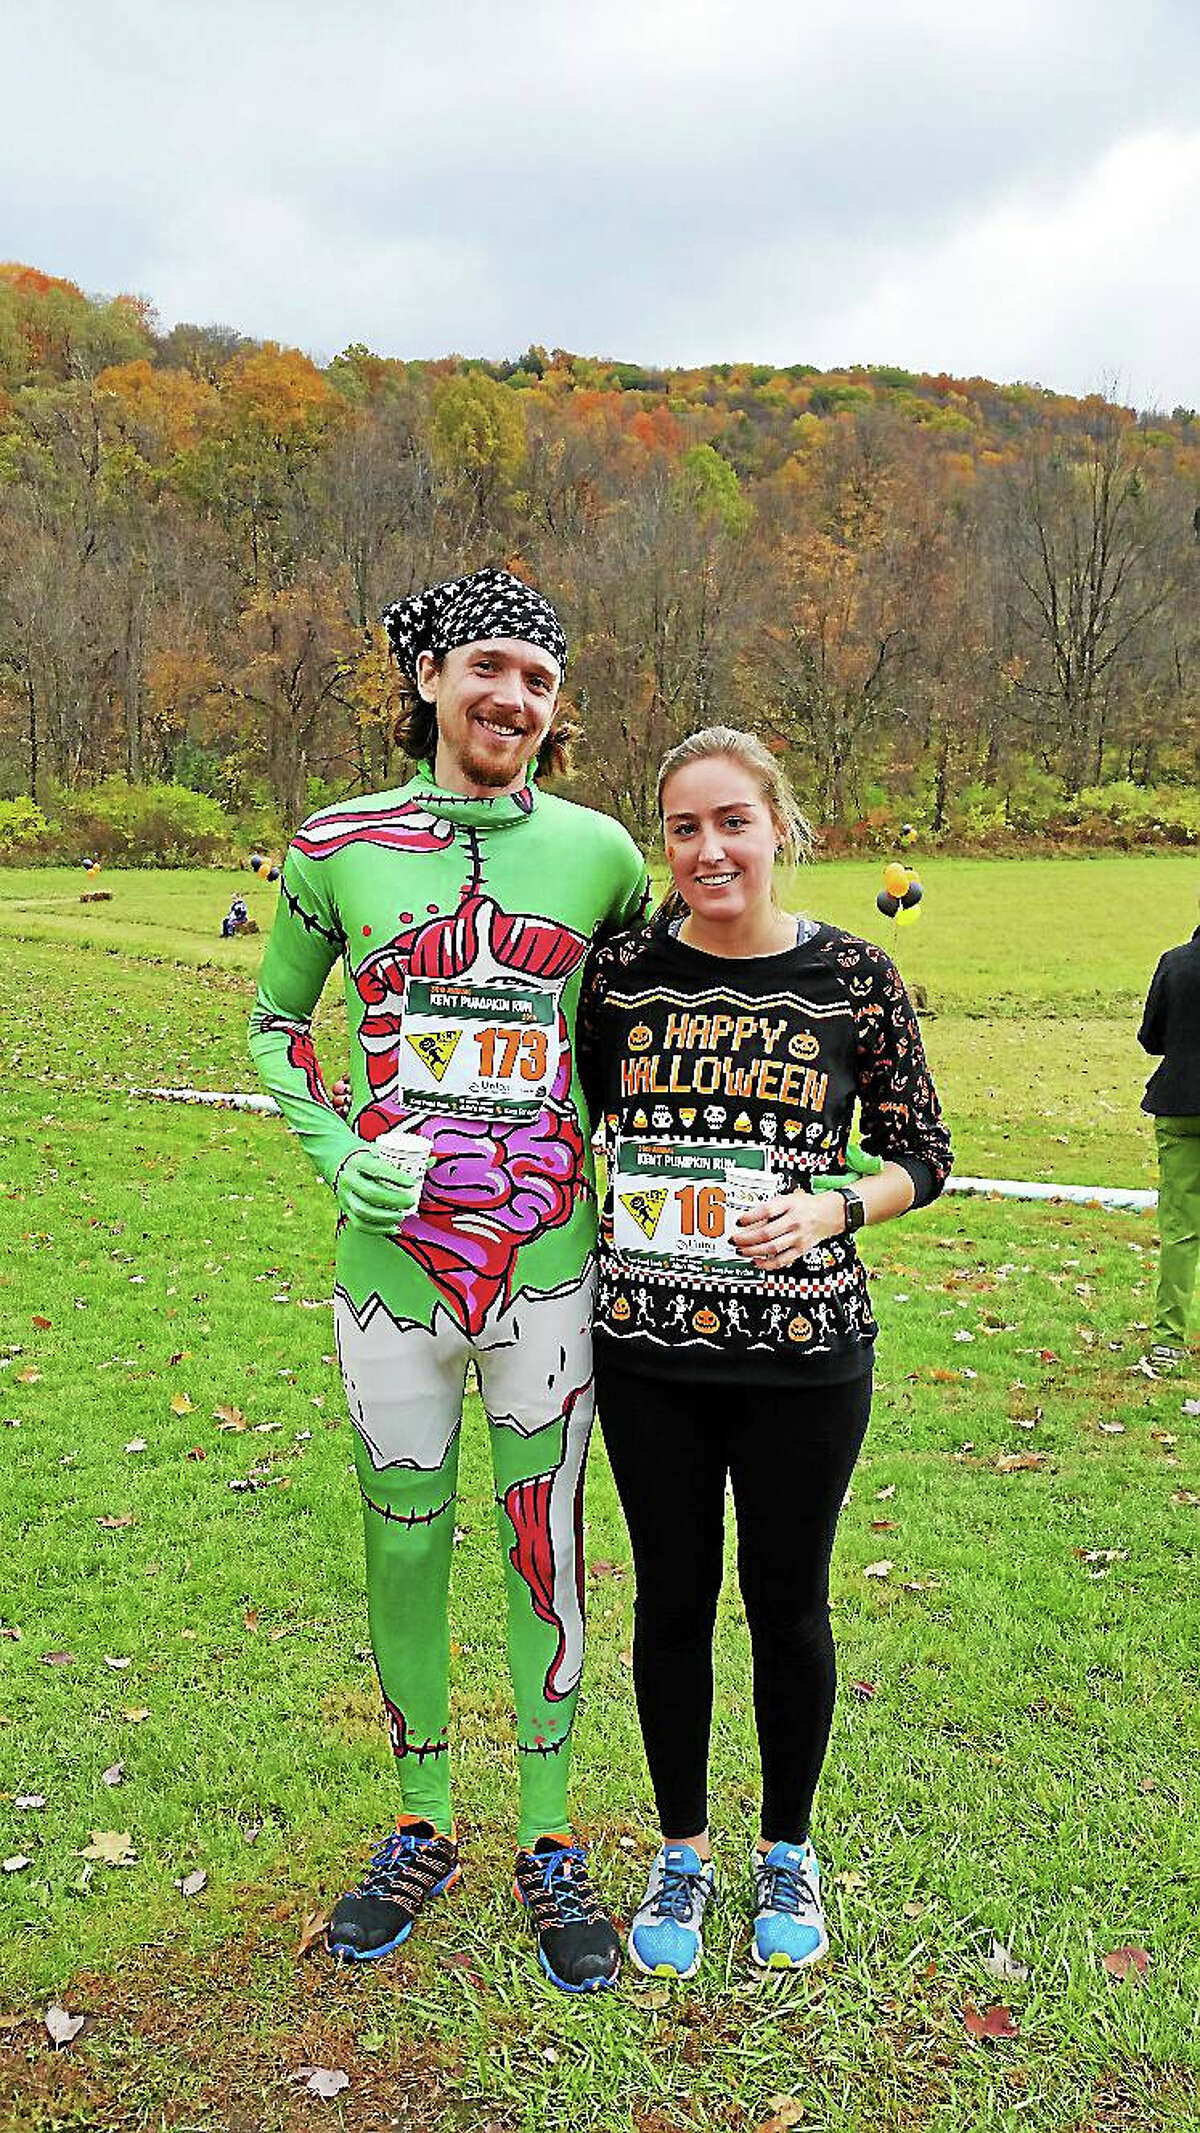 Simon Hawkins of New Canaan and Whitney Lewis of Darien pause after the Pumpkin Run Sunday.